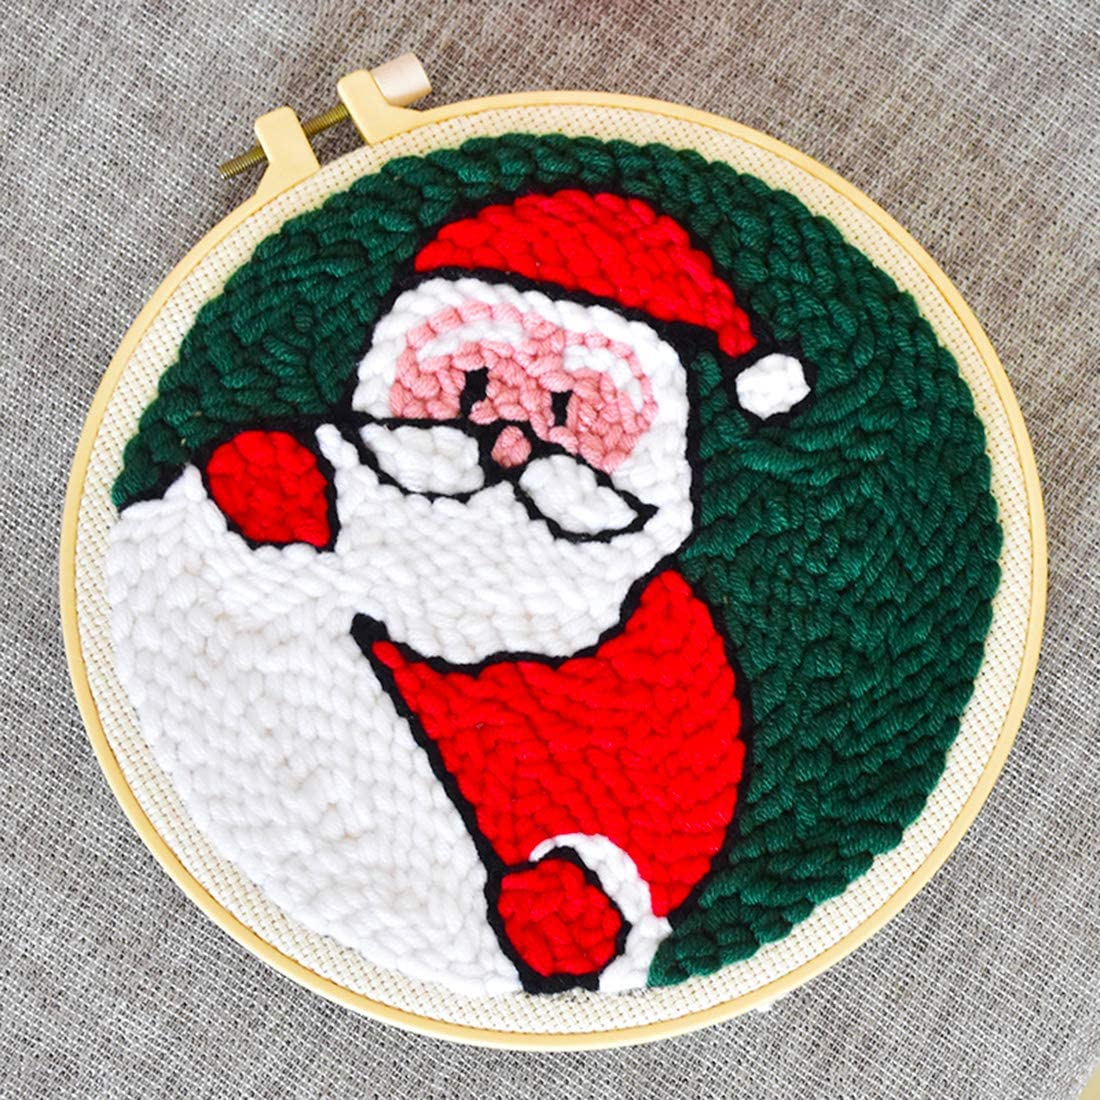 Christmas Theme DIY Handcraft Embroidery Knitting Rug Punch Beginner Kit Latch Hook Kits with Punch Needle Colorful Yarn and Frame Christmas Elk Yamix Punch Needle Starter Kit